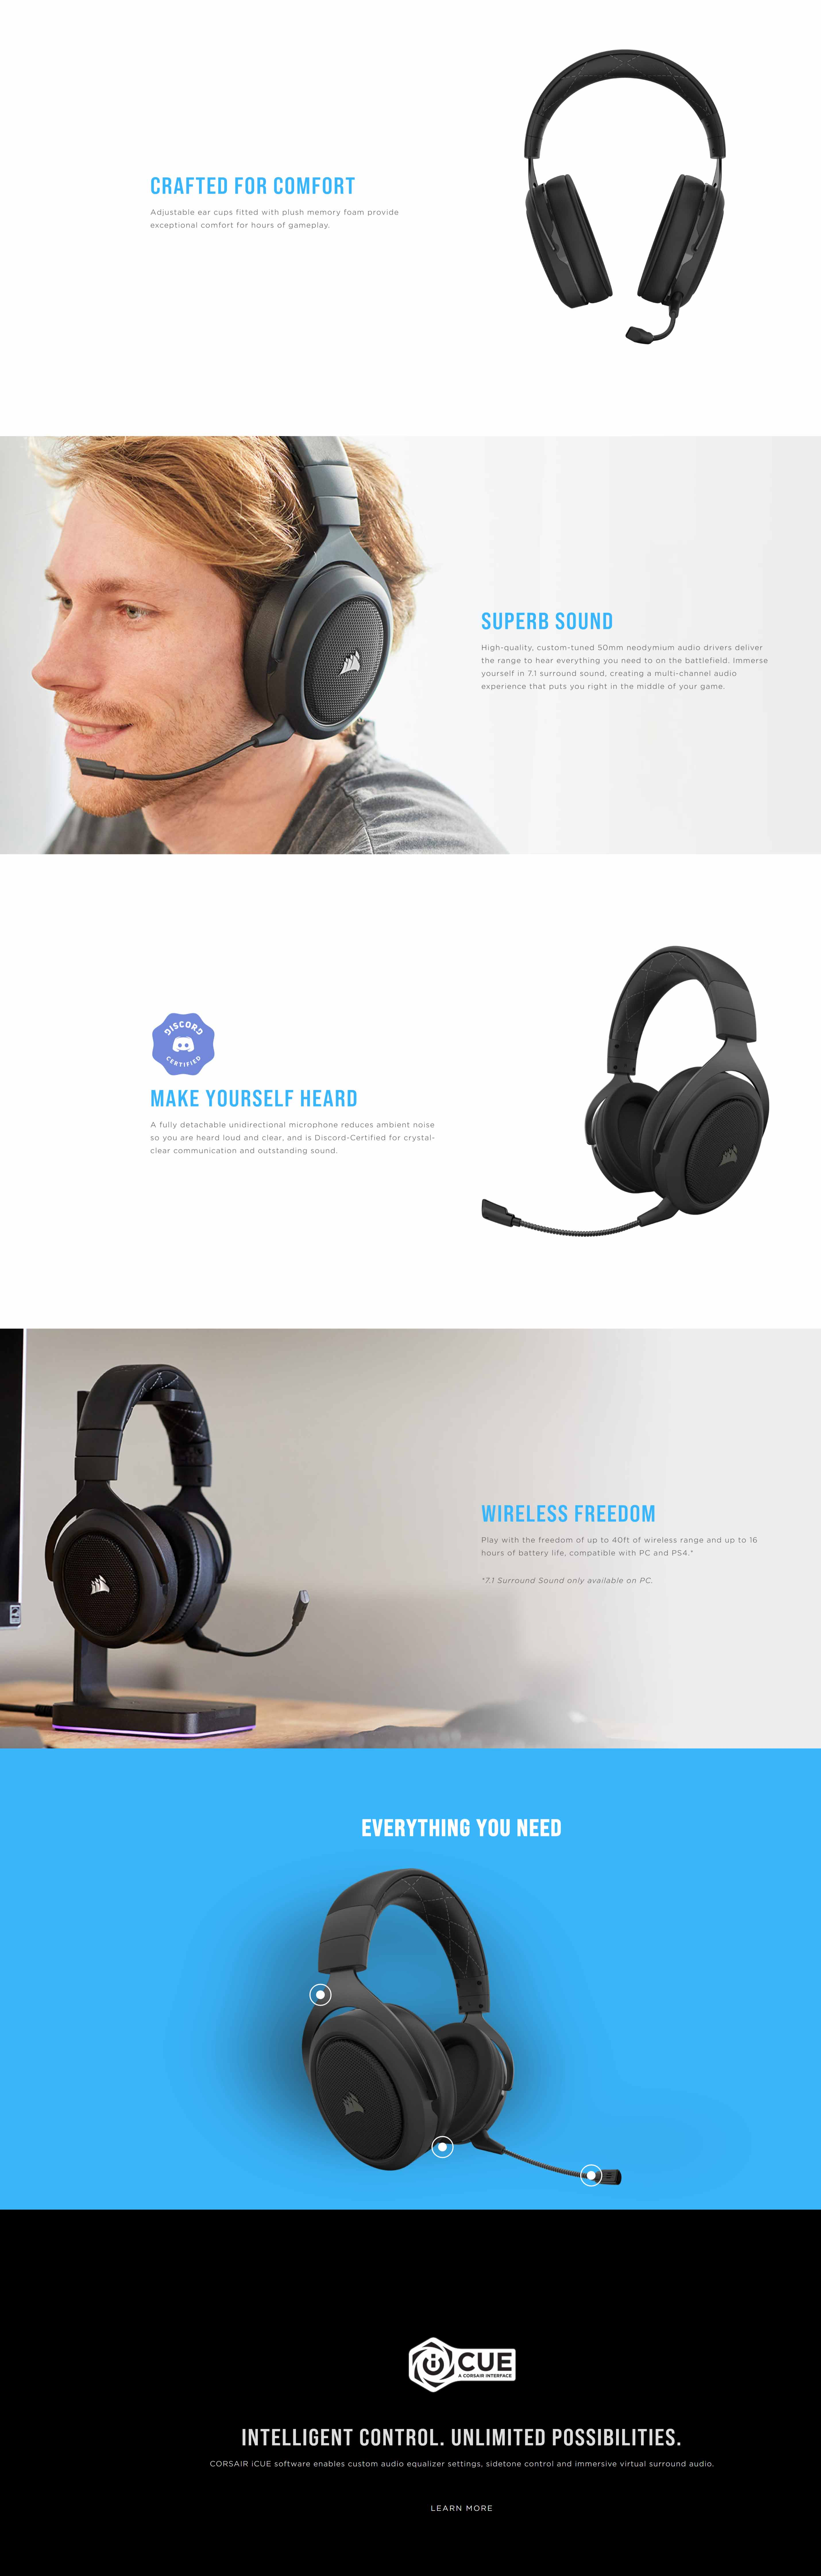 screencapture-corsair-us-en-Categories-Products-Gaming-Headsets-Wireless-Headsets-HS70-PRO-WIRELESS-Gaming-Headset-p-CA-9011211-NA-2020-01-02-15_52_30.jpg